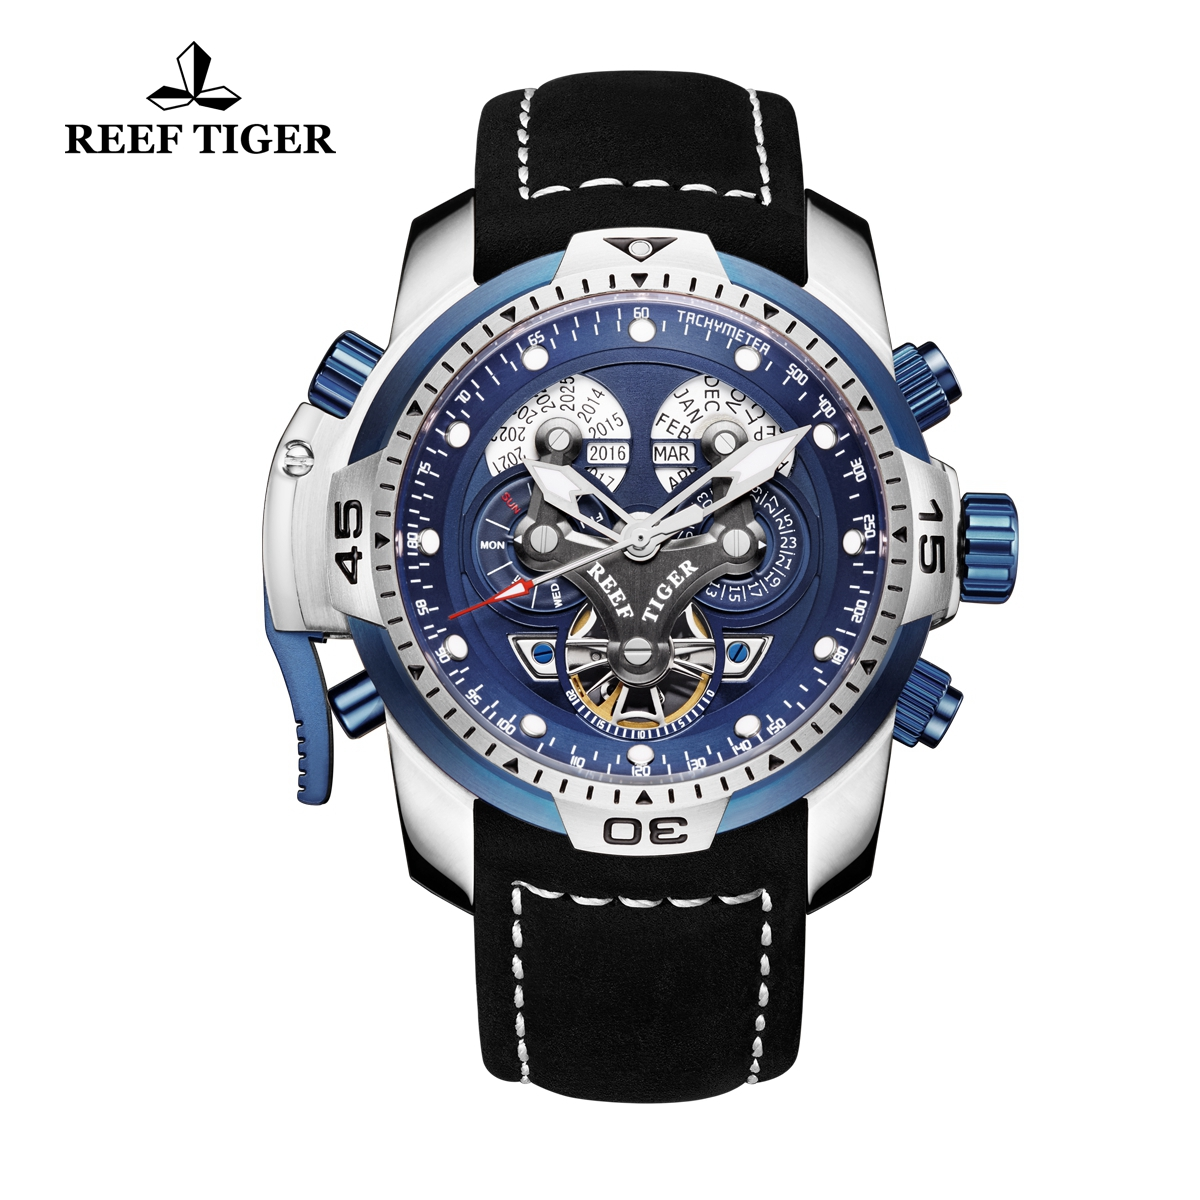 Reef Tiger Concept Steel Case Sport Watches Black Leather Automatic Watch RGA3503-YLBLB